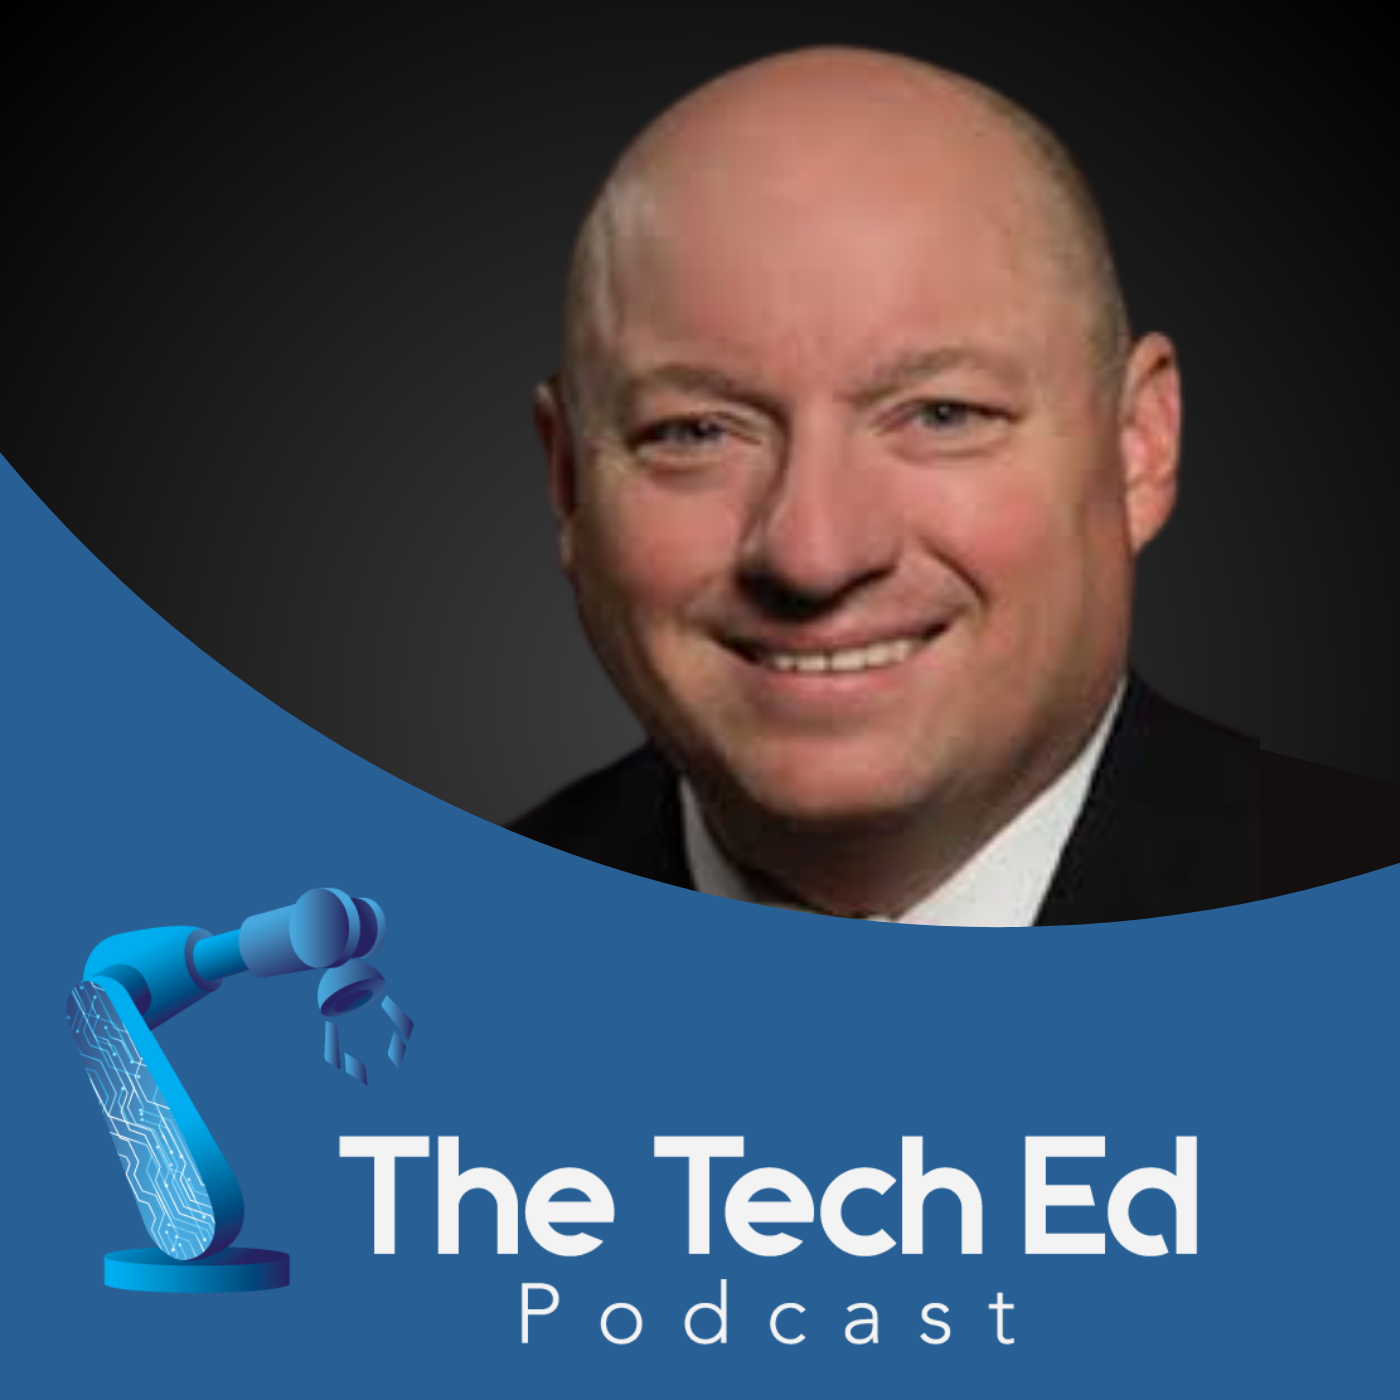 Todd Wanek on The TechEd Podcast